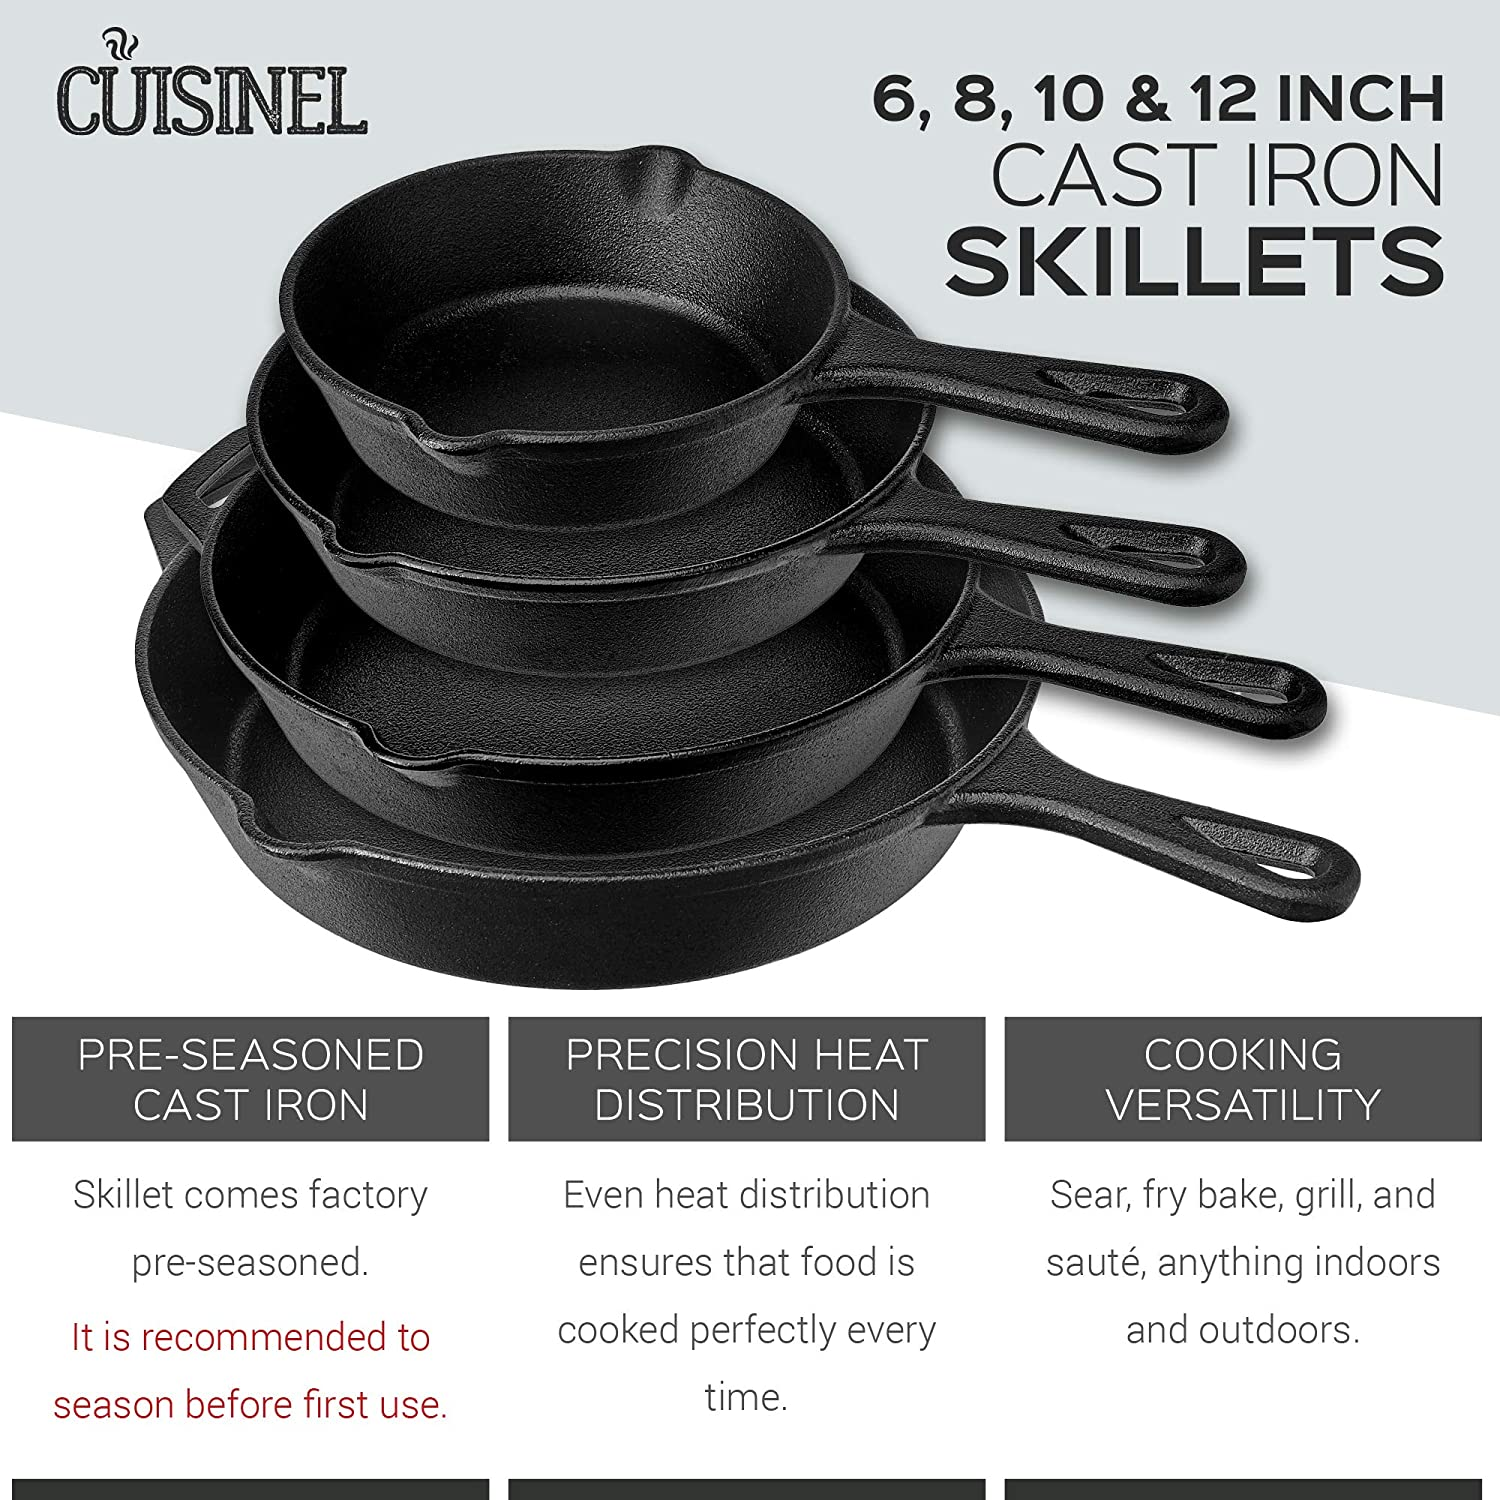 Pre-Seasoned Cast Iron Skillet 4-Piece Complete Chef Set 6-Inch 8-Inch 10-Inch 12-Inch Oven Safe Cookware – 4 Heat-Resistant Holders – Indoor and Outdoor Use – Grill, Stovetop, Induction Safe